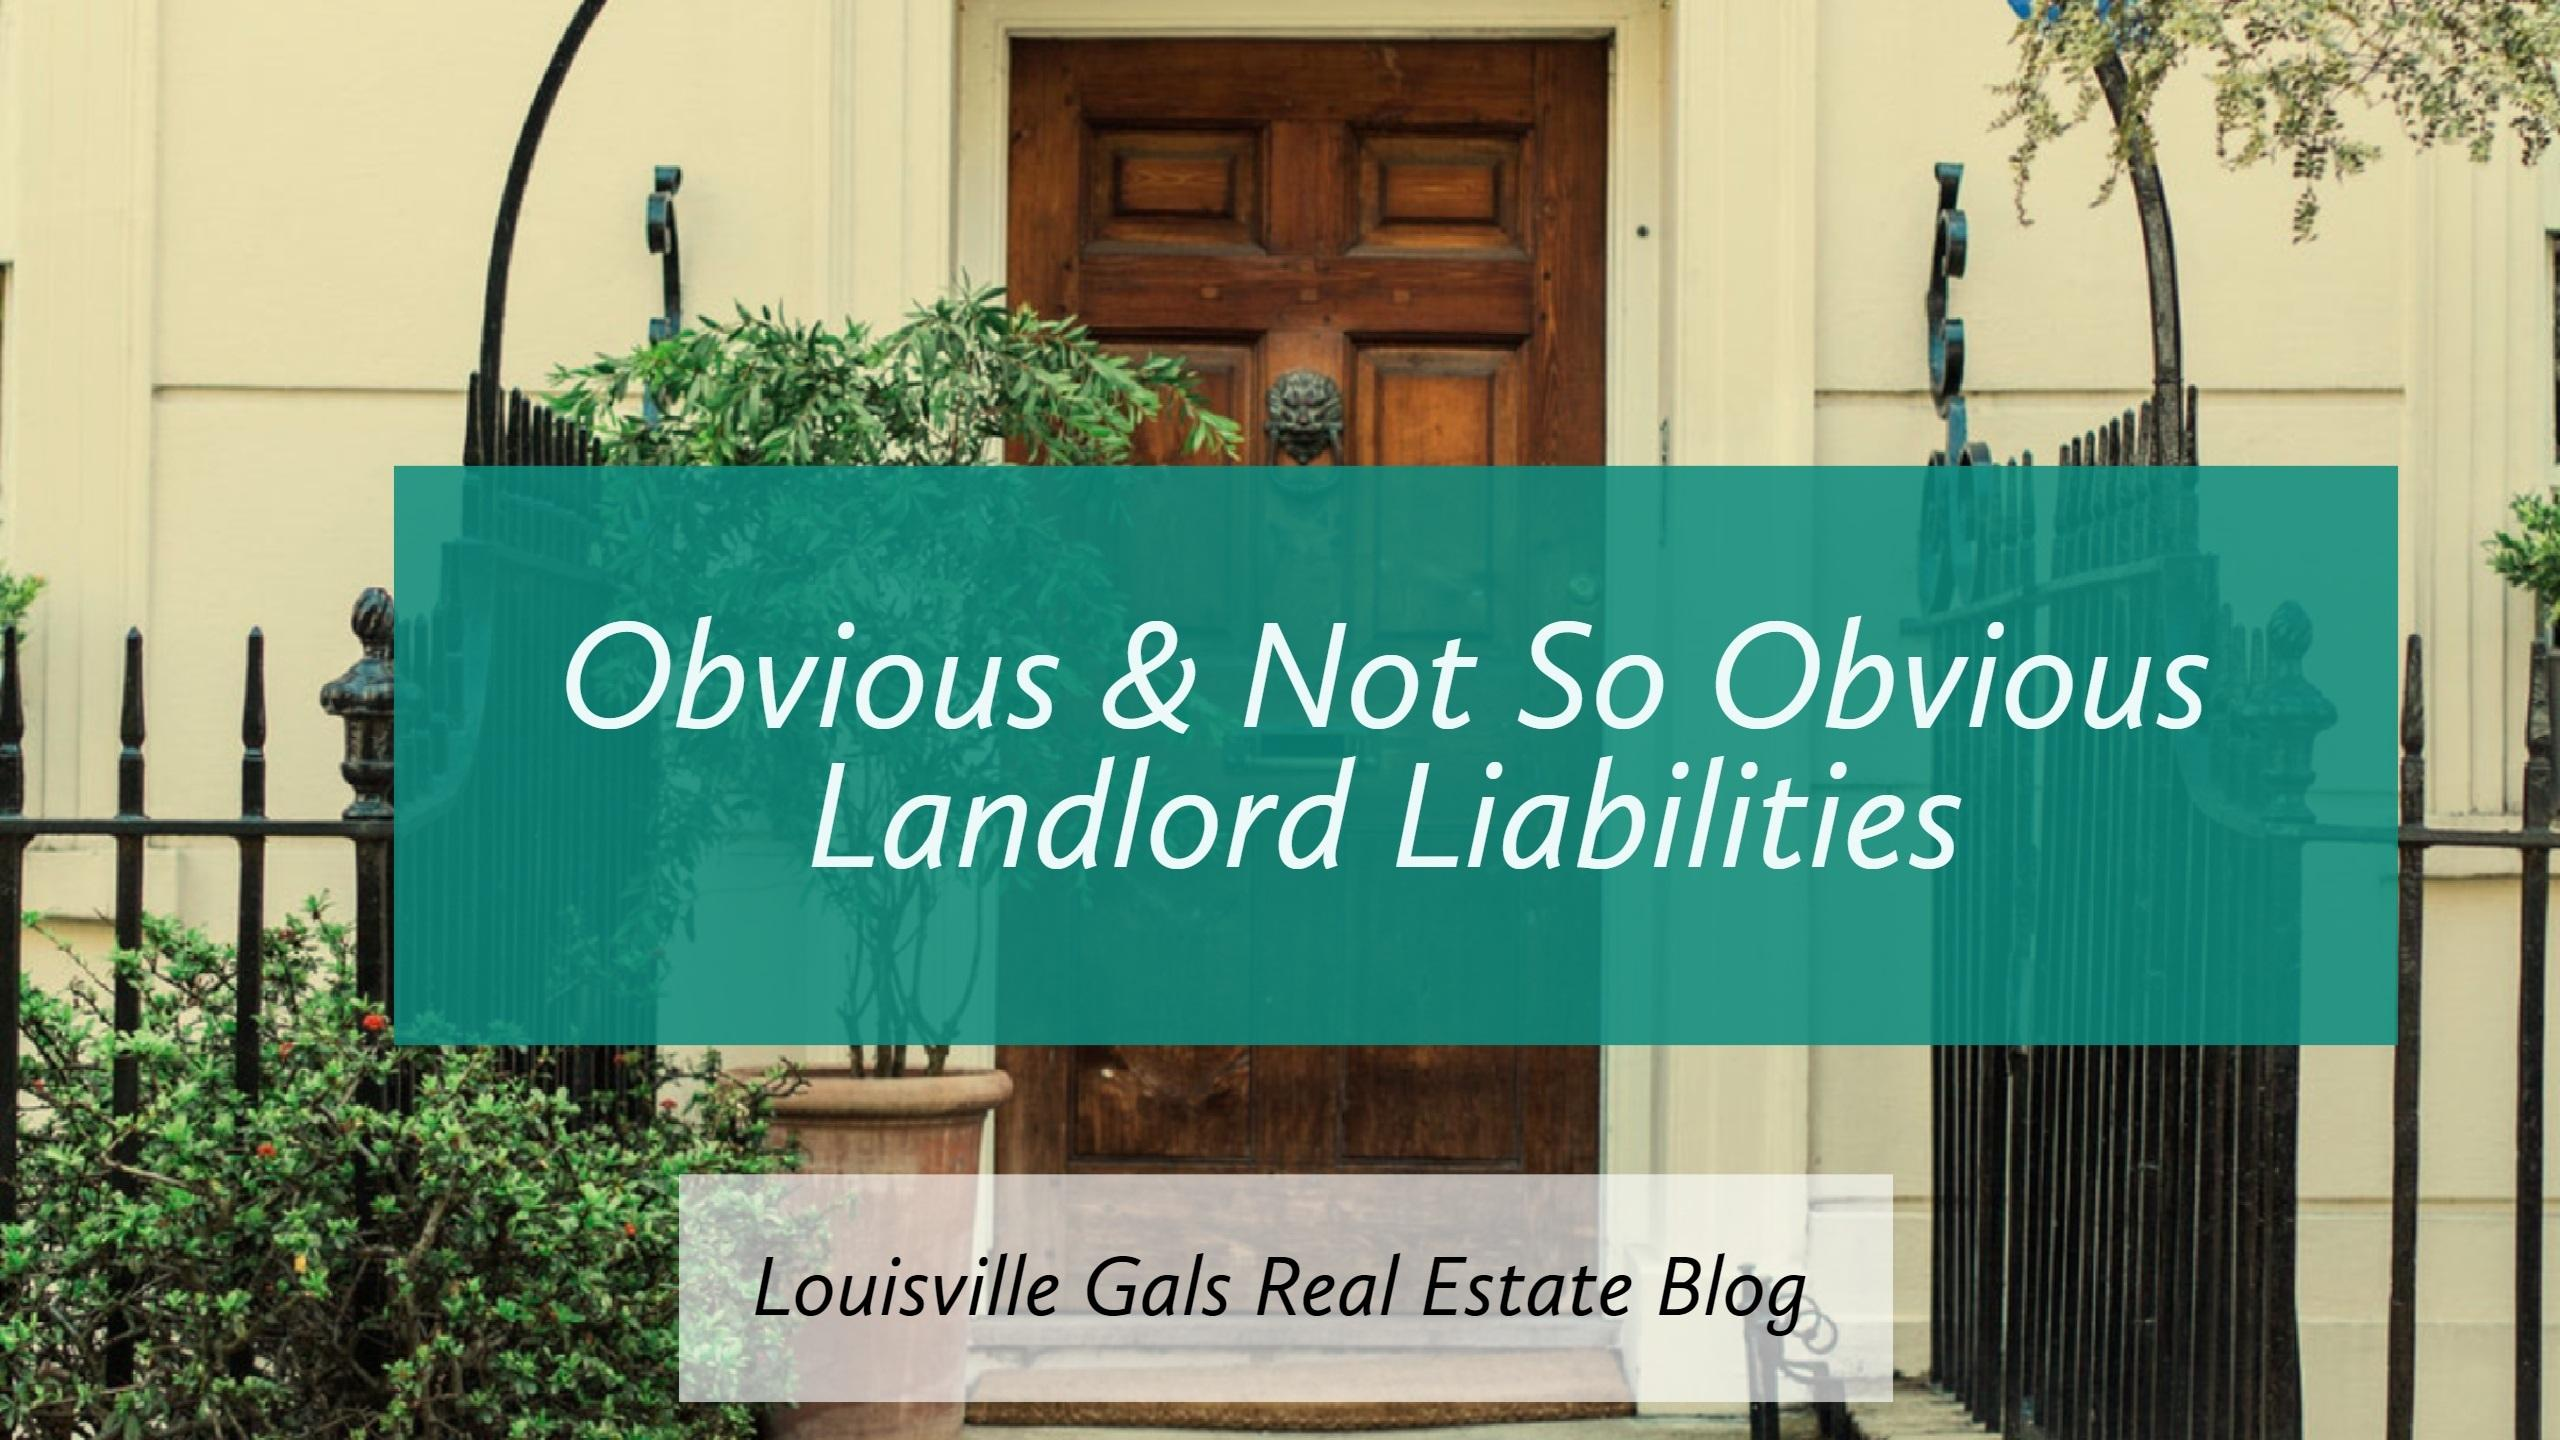 The Obvious and Not So Obvious Landlord Liabilities